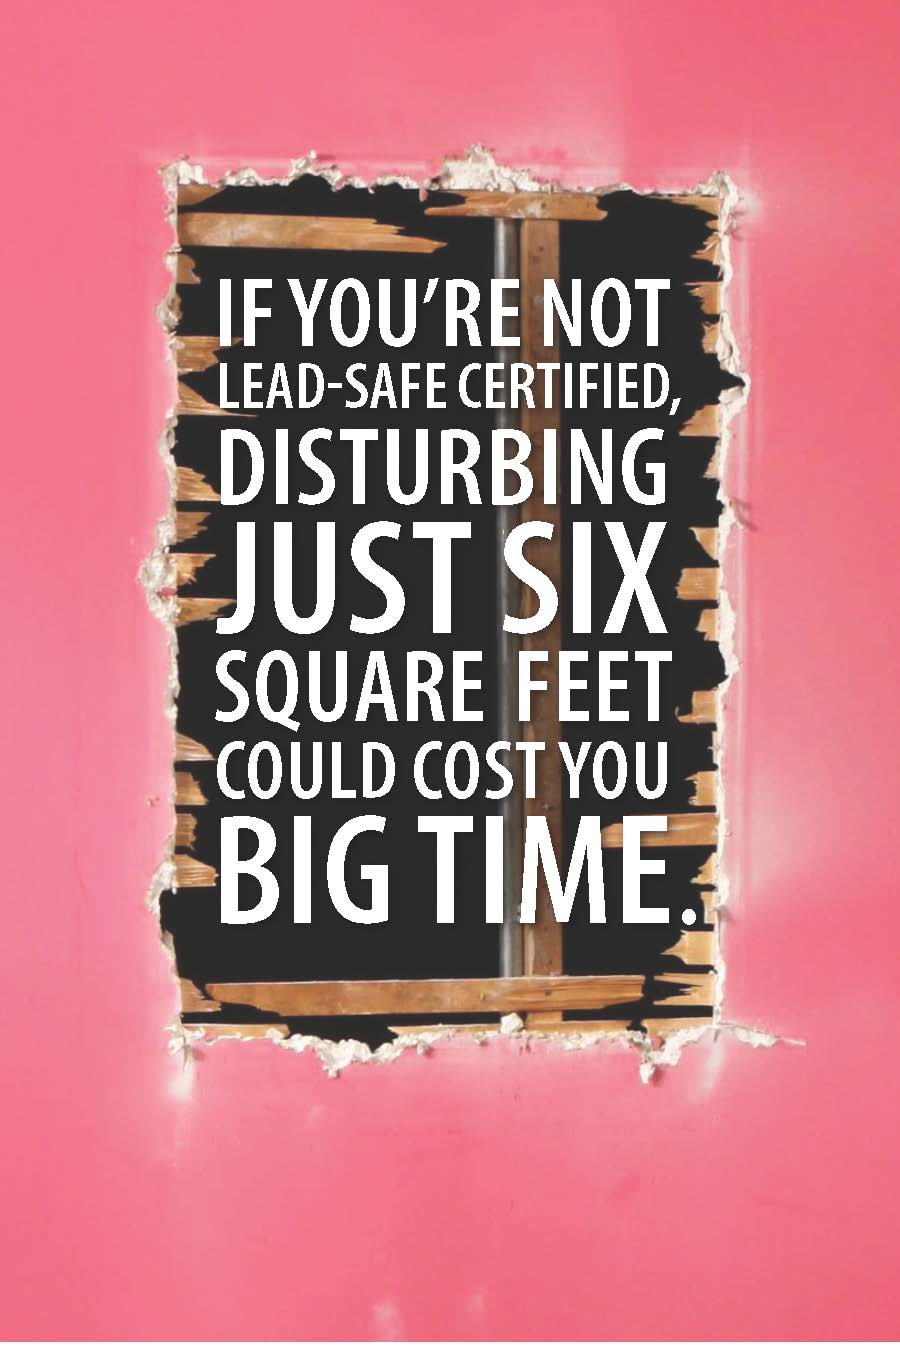 if you're not lead-safe certified disturbing just six square fee could cost you <em>big time</em>.